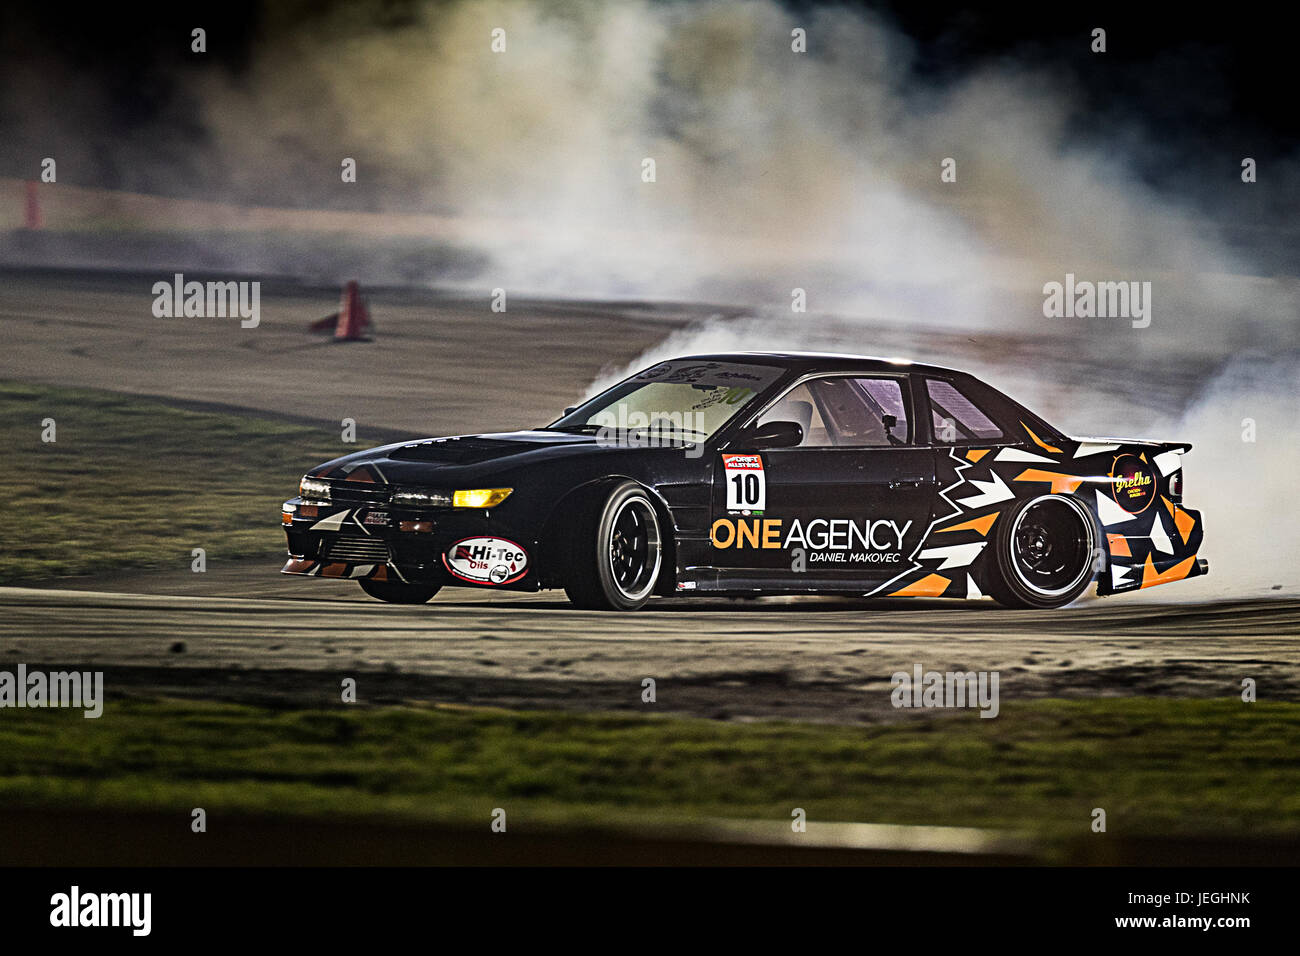 Sydney Motorsport Park, Australia. 24th June 2017.  Qualifying for Josh Kelly in his Nissan 180SX. Anthony Bolack/Alamy - Stock Image